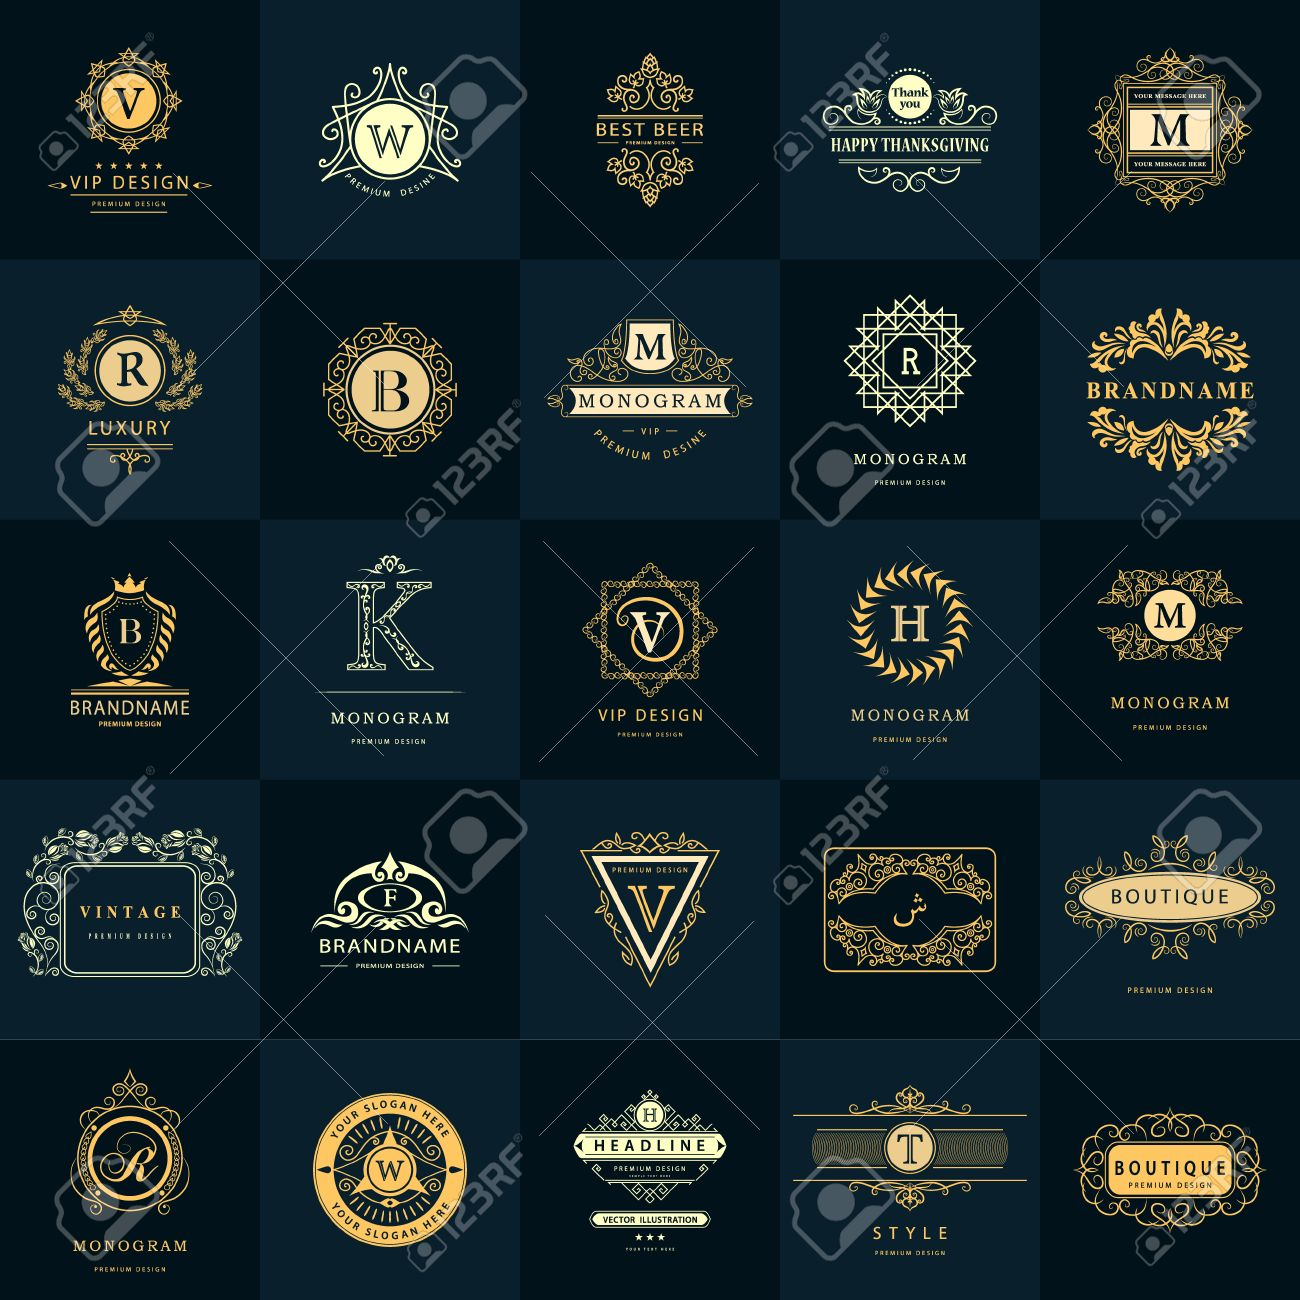 13ab3070cb456 Vintage Logos Design Templates Set. Business sign Letter emblem. Vector  logotypes elements collection